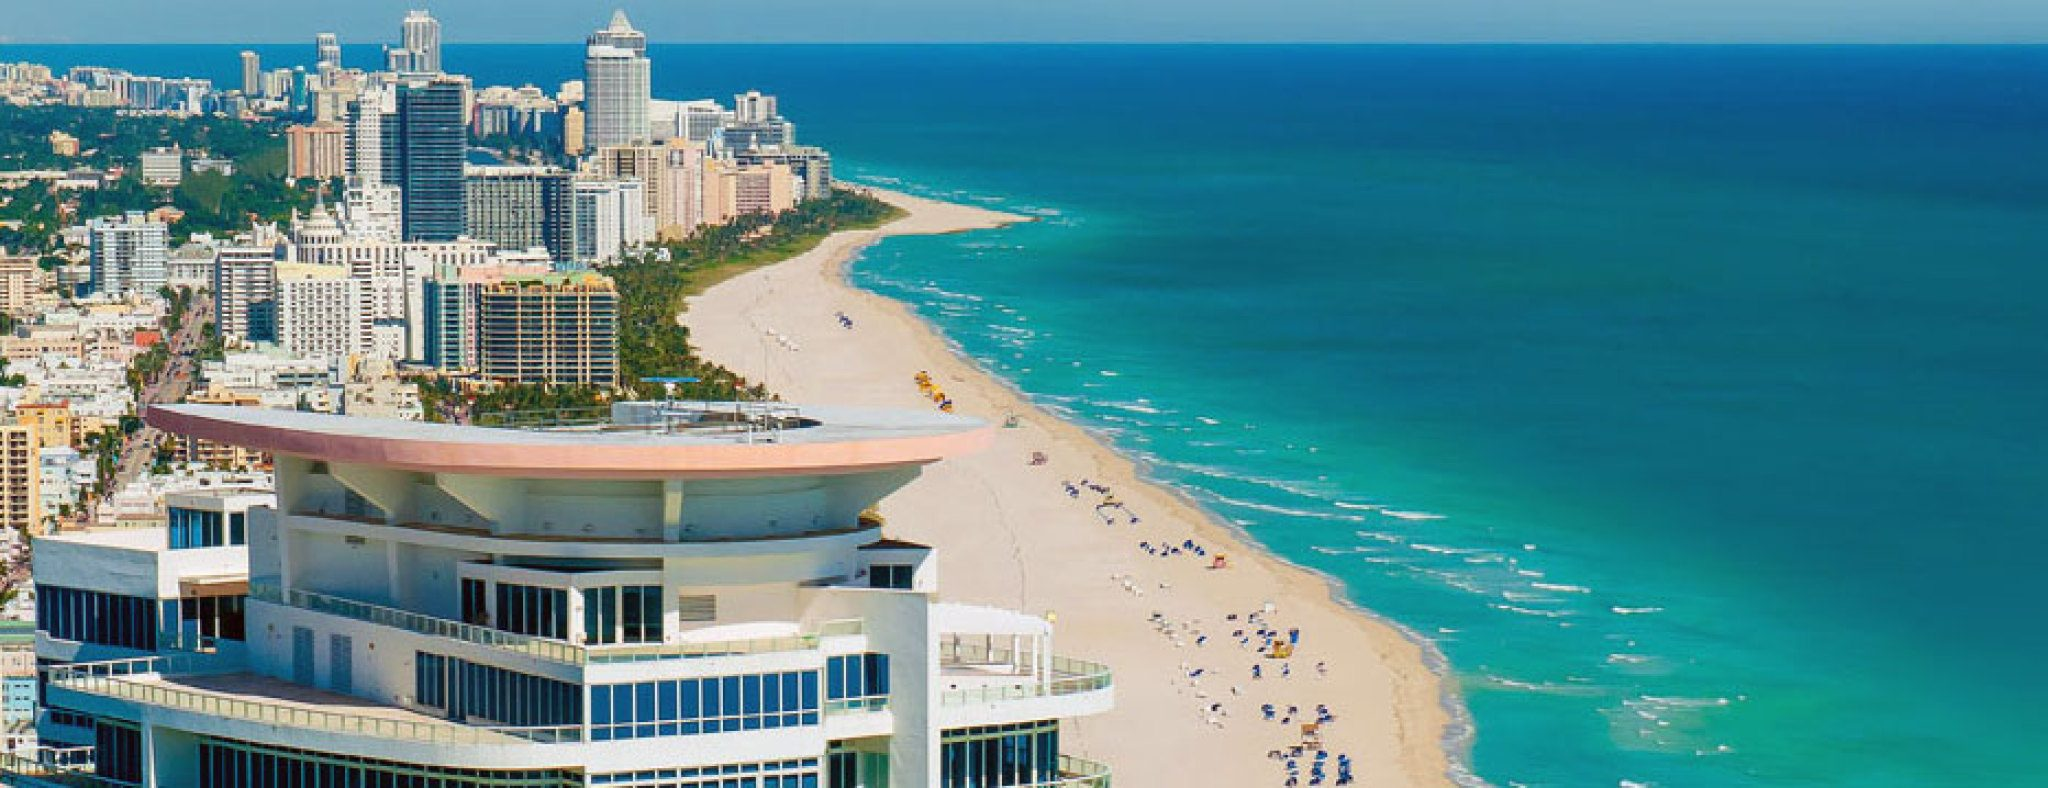 Featured Community - Stunning View of Miami Beach from the Magnificent Continuum South.